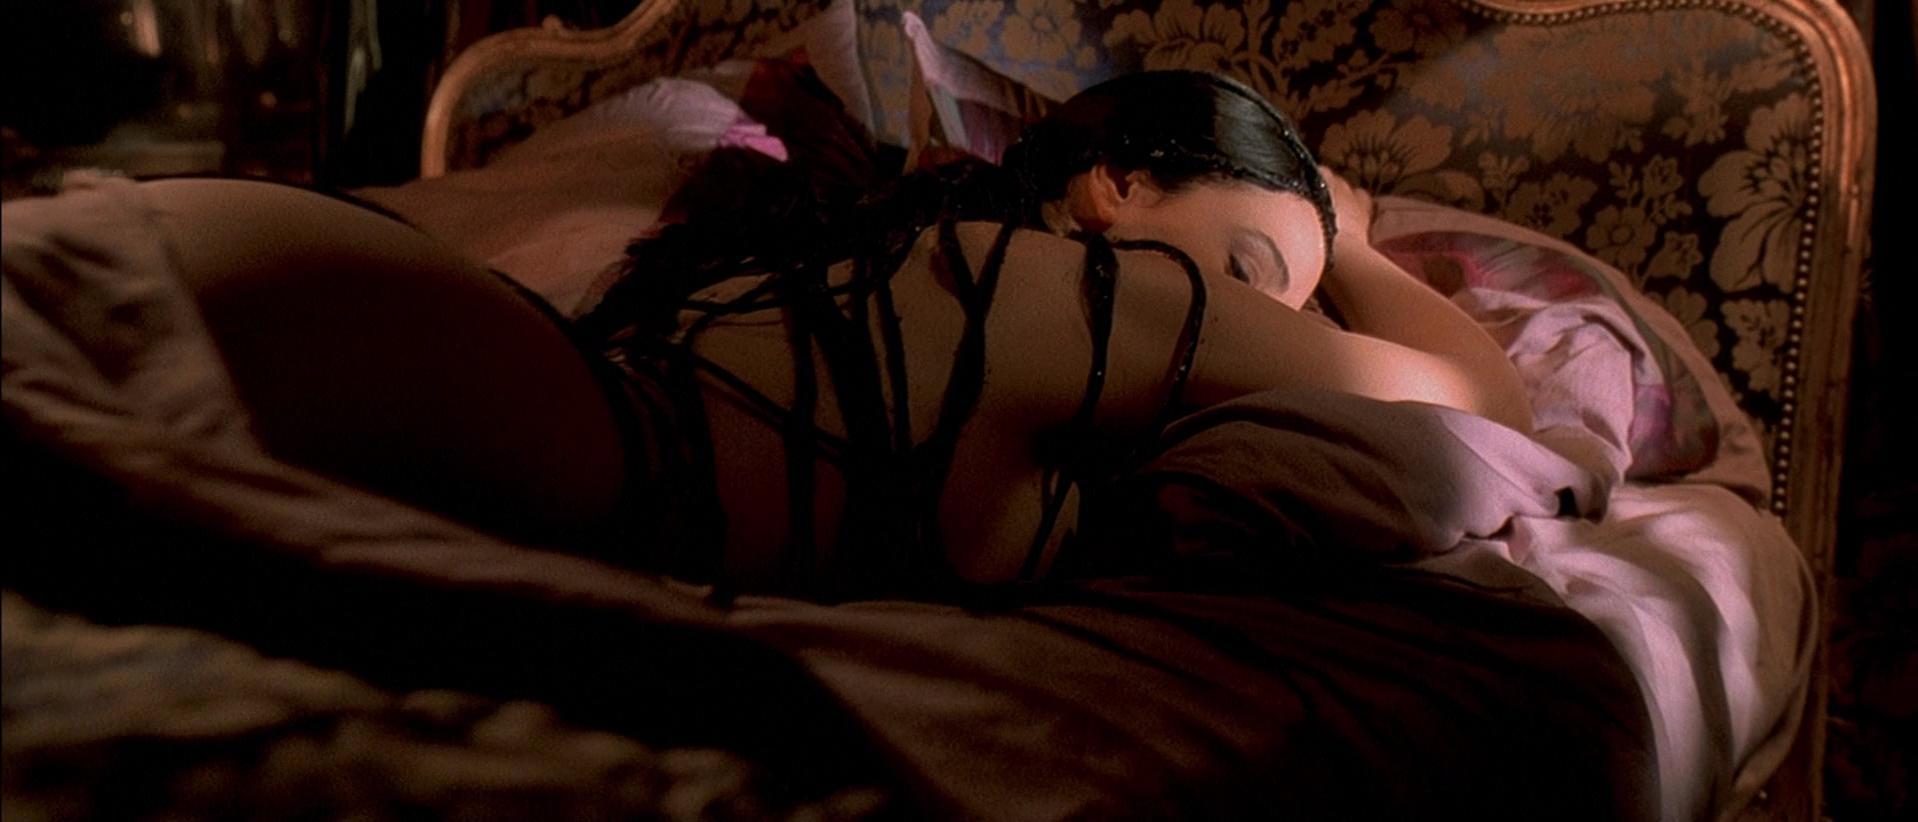 Monica bellucci getting fucked